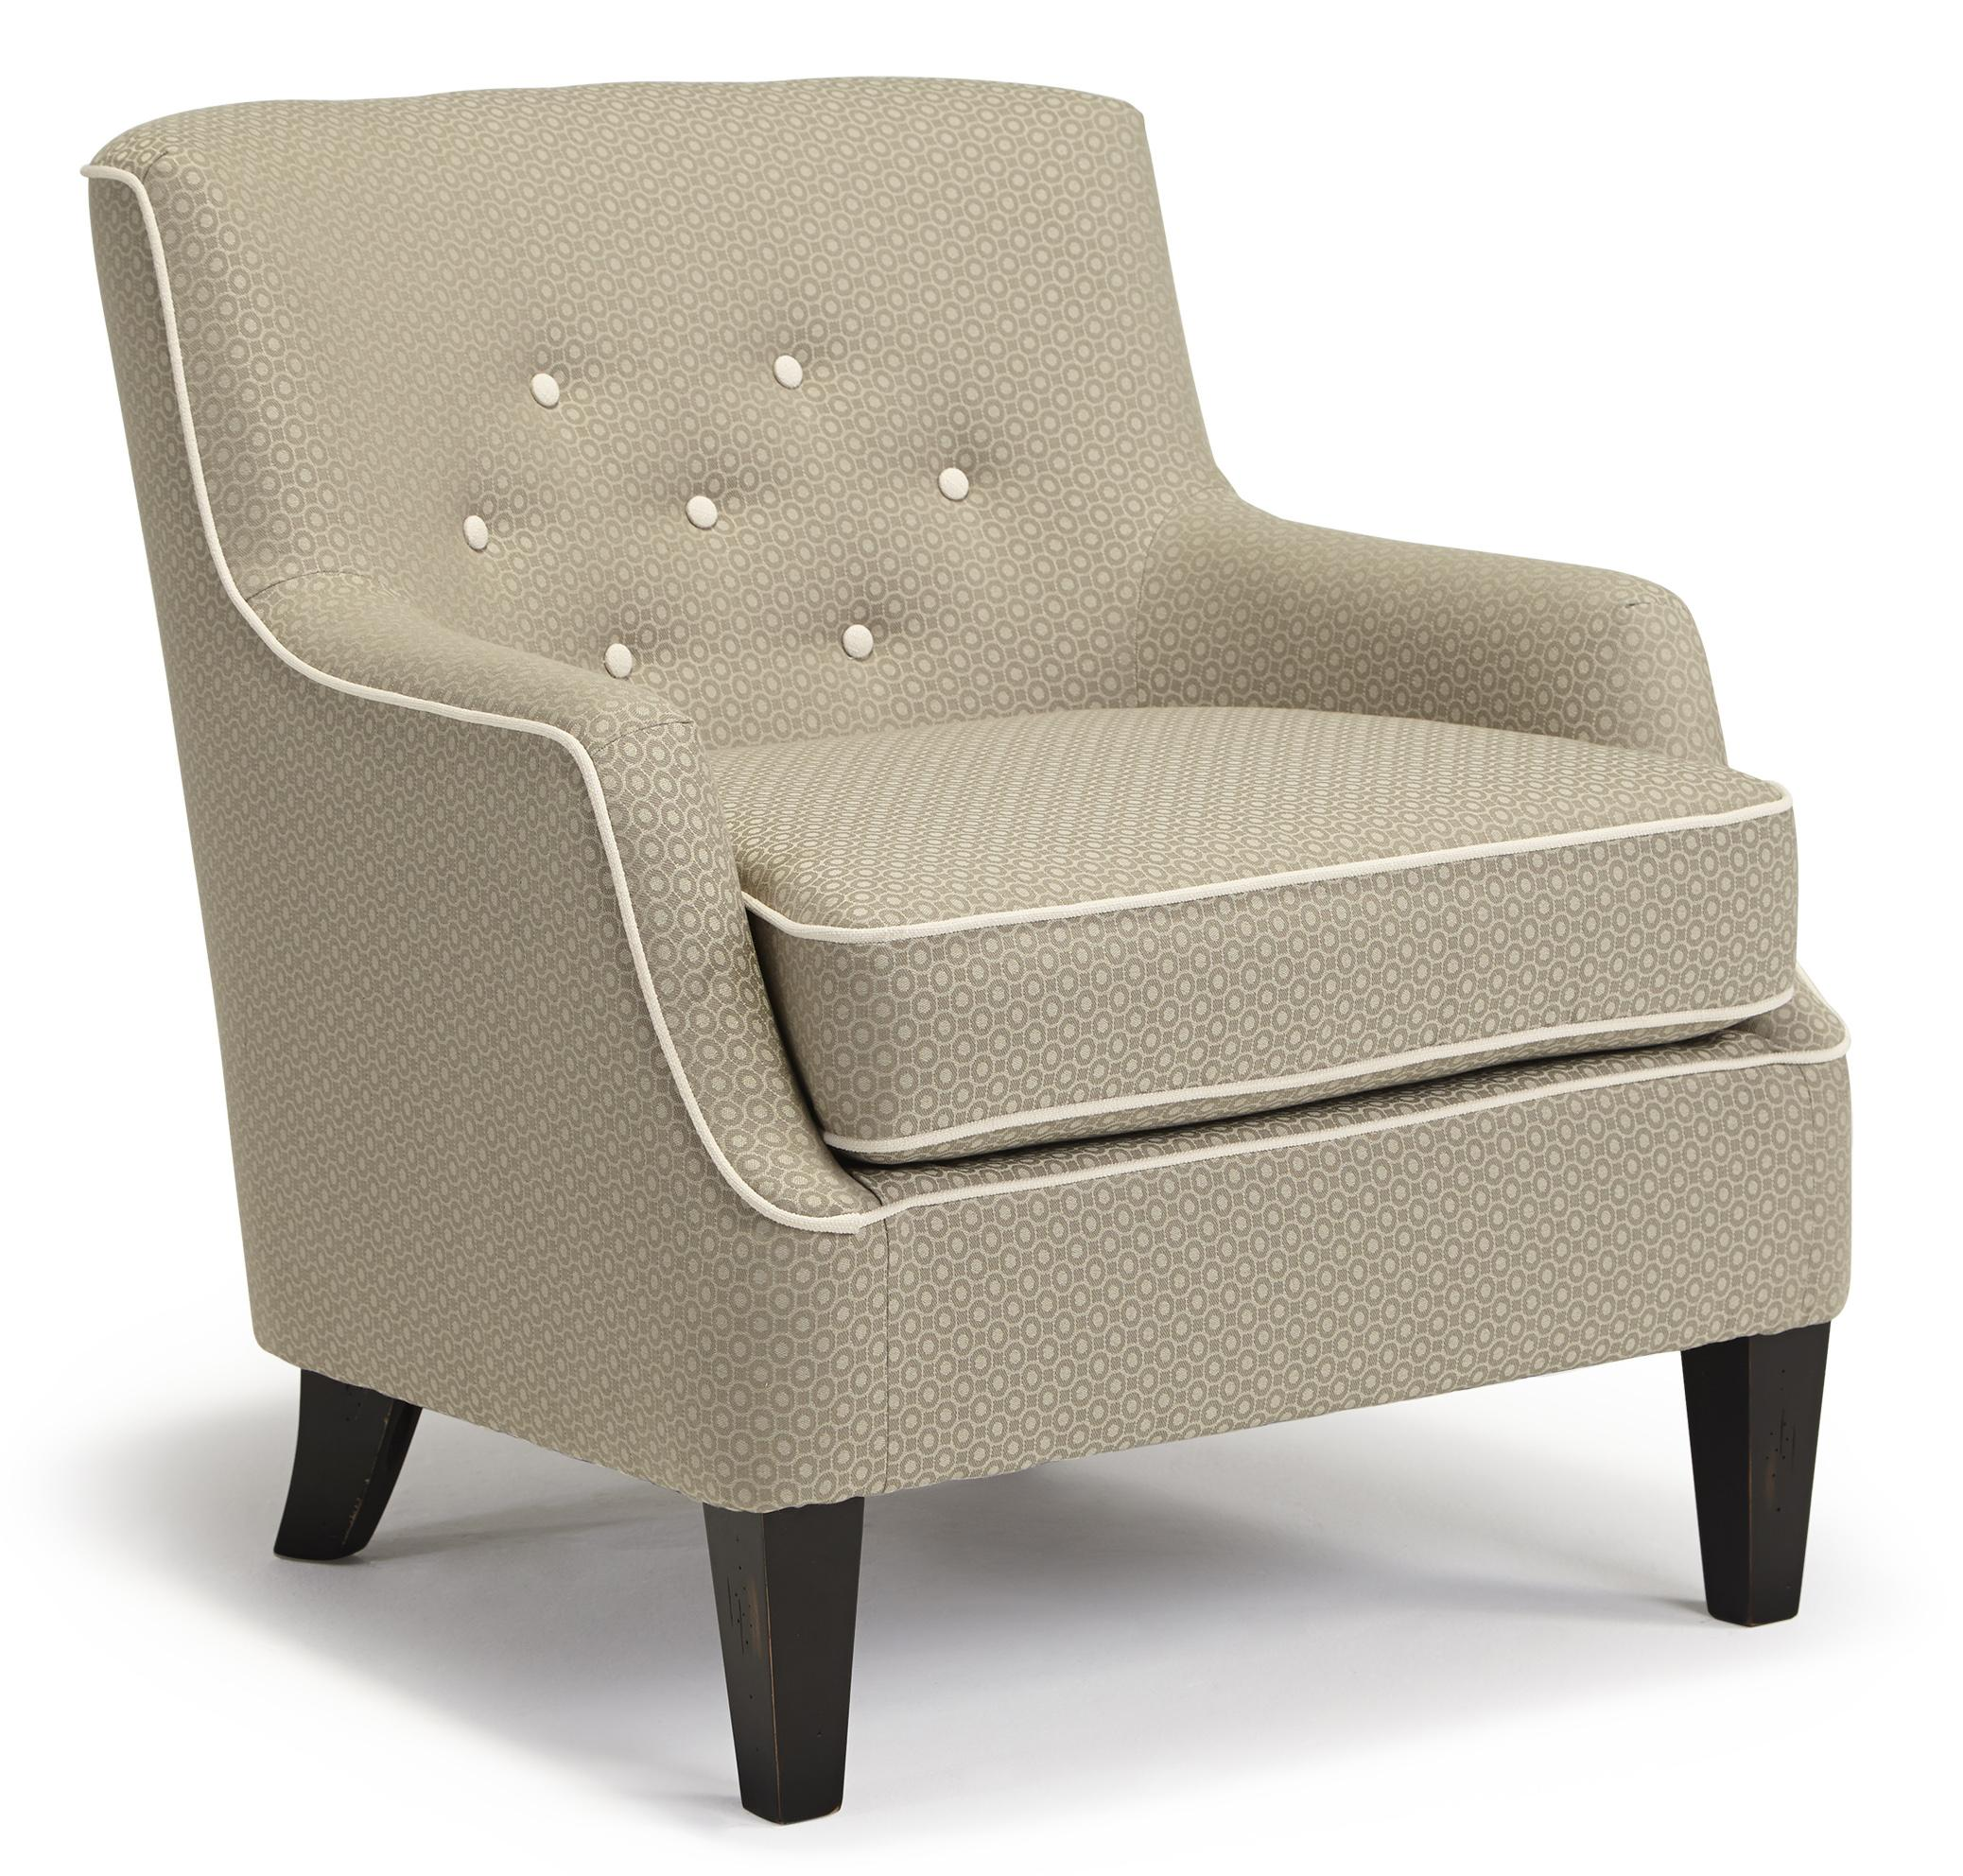 Club Chairs Cecil Club Chair by Best Home Furnishings at Lapeer Furniture & Mattress Center